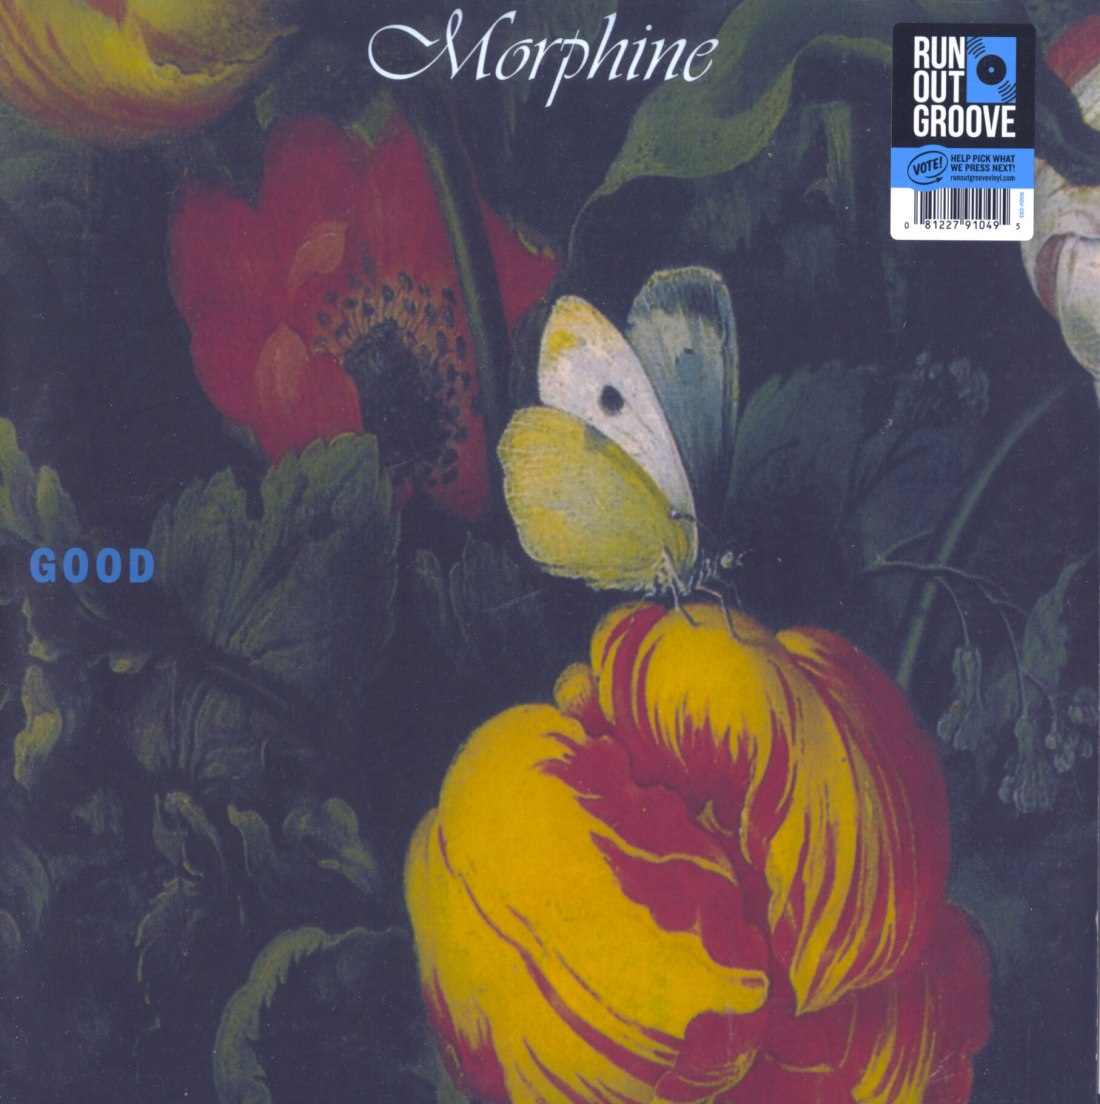 Morphine - Good - Limited Edition, Numbered, 180 Gram, Double Vinyl, Numbered, Expanded, Run Out Groove, 2020